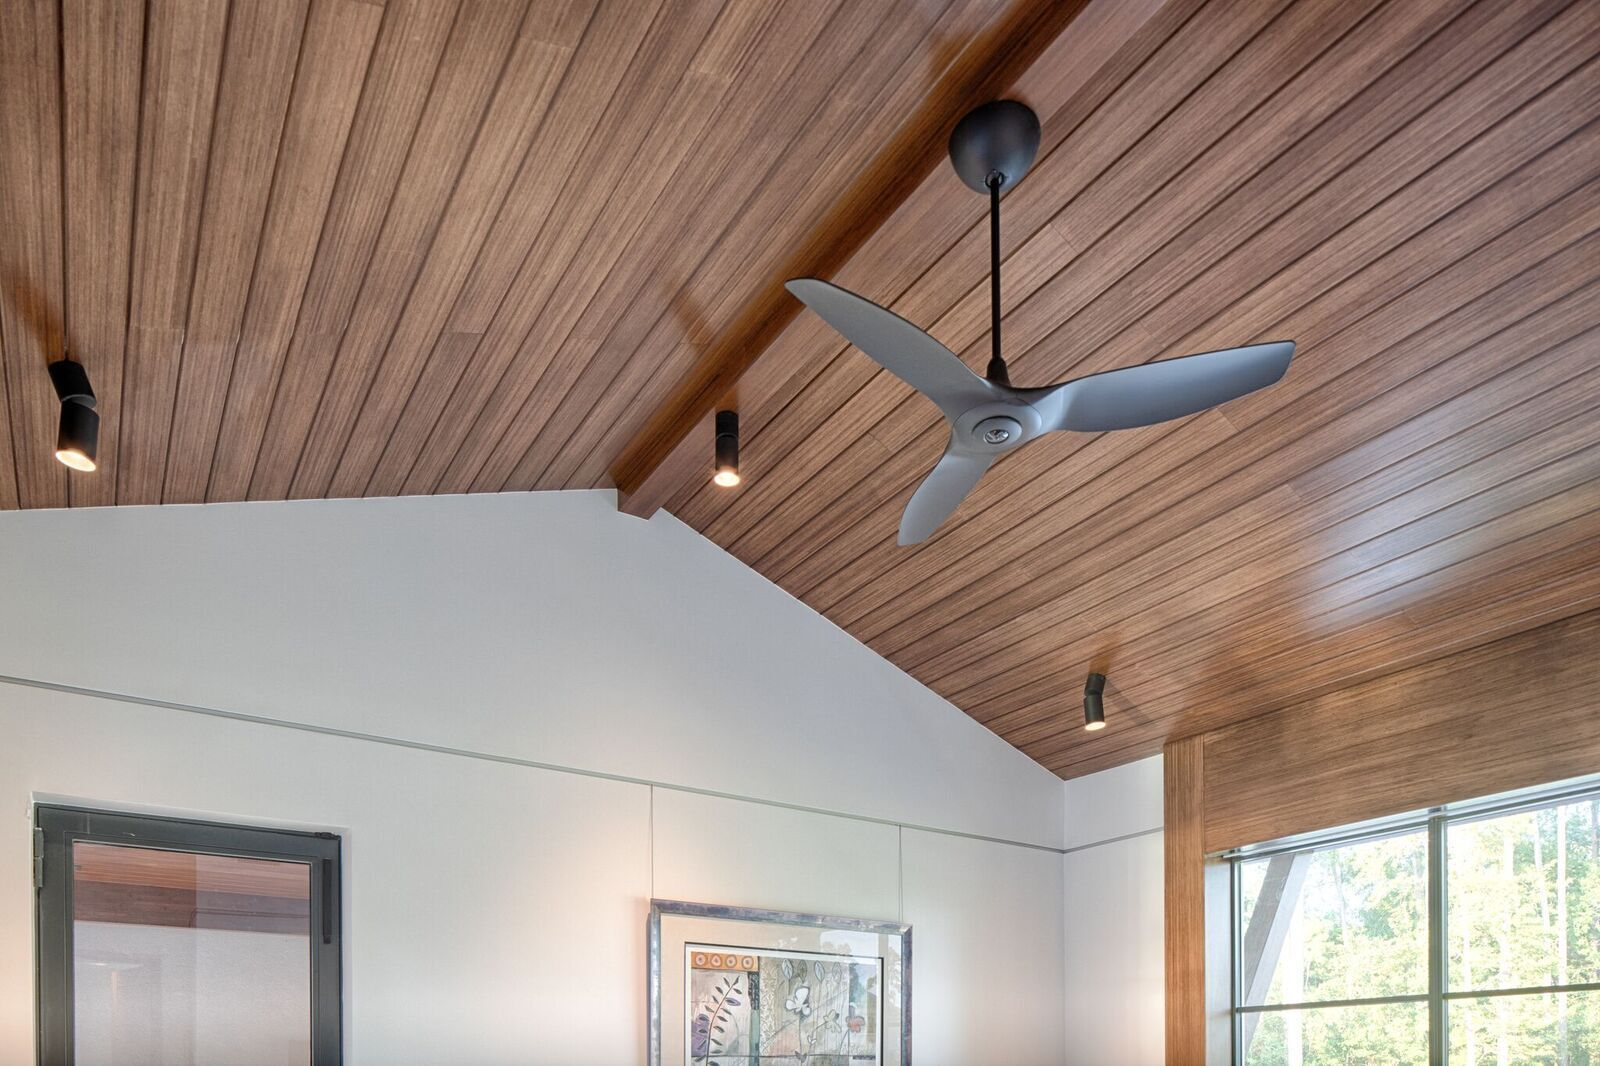 Lamboo® Skyline™ - Interior Linear Ceiling System is seen throughout  the interior of the Okatie Residence.